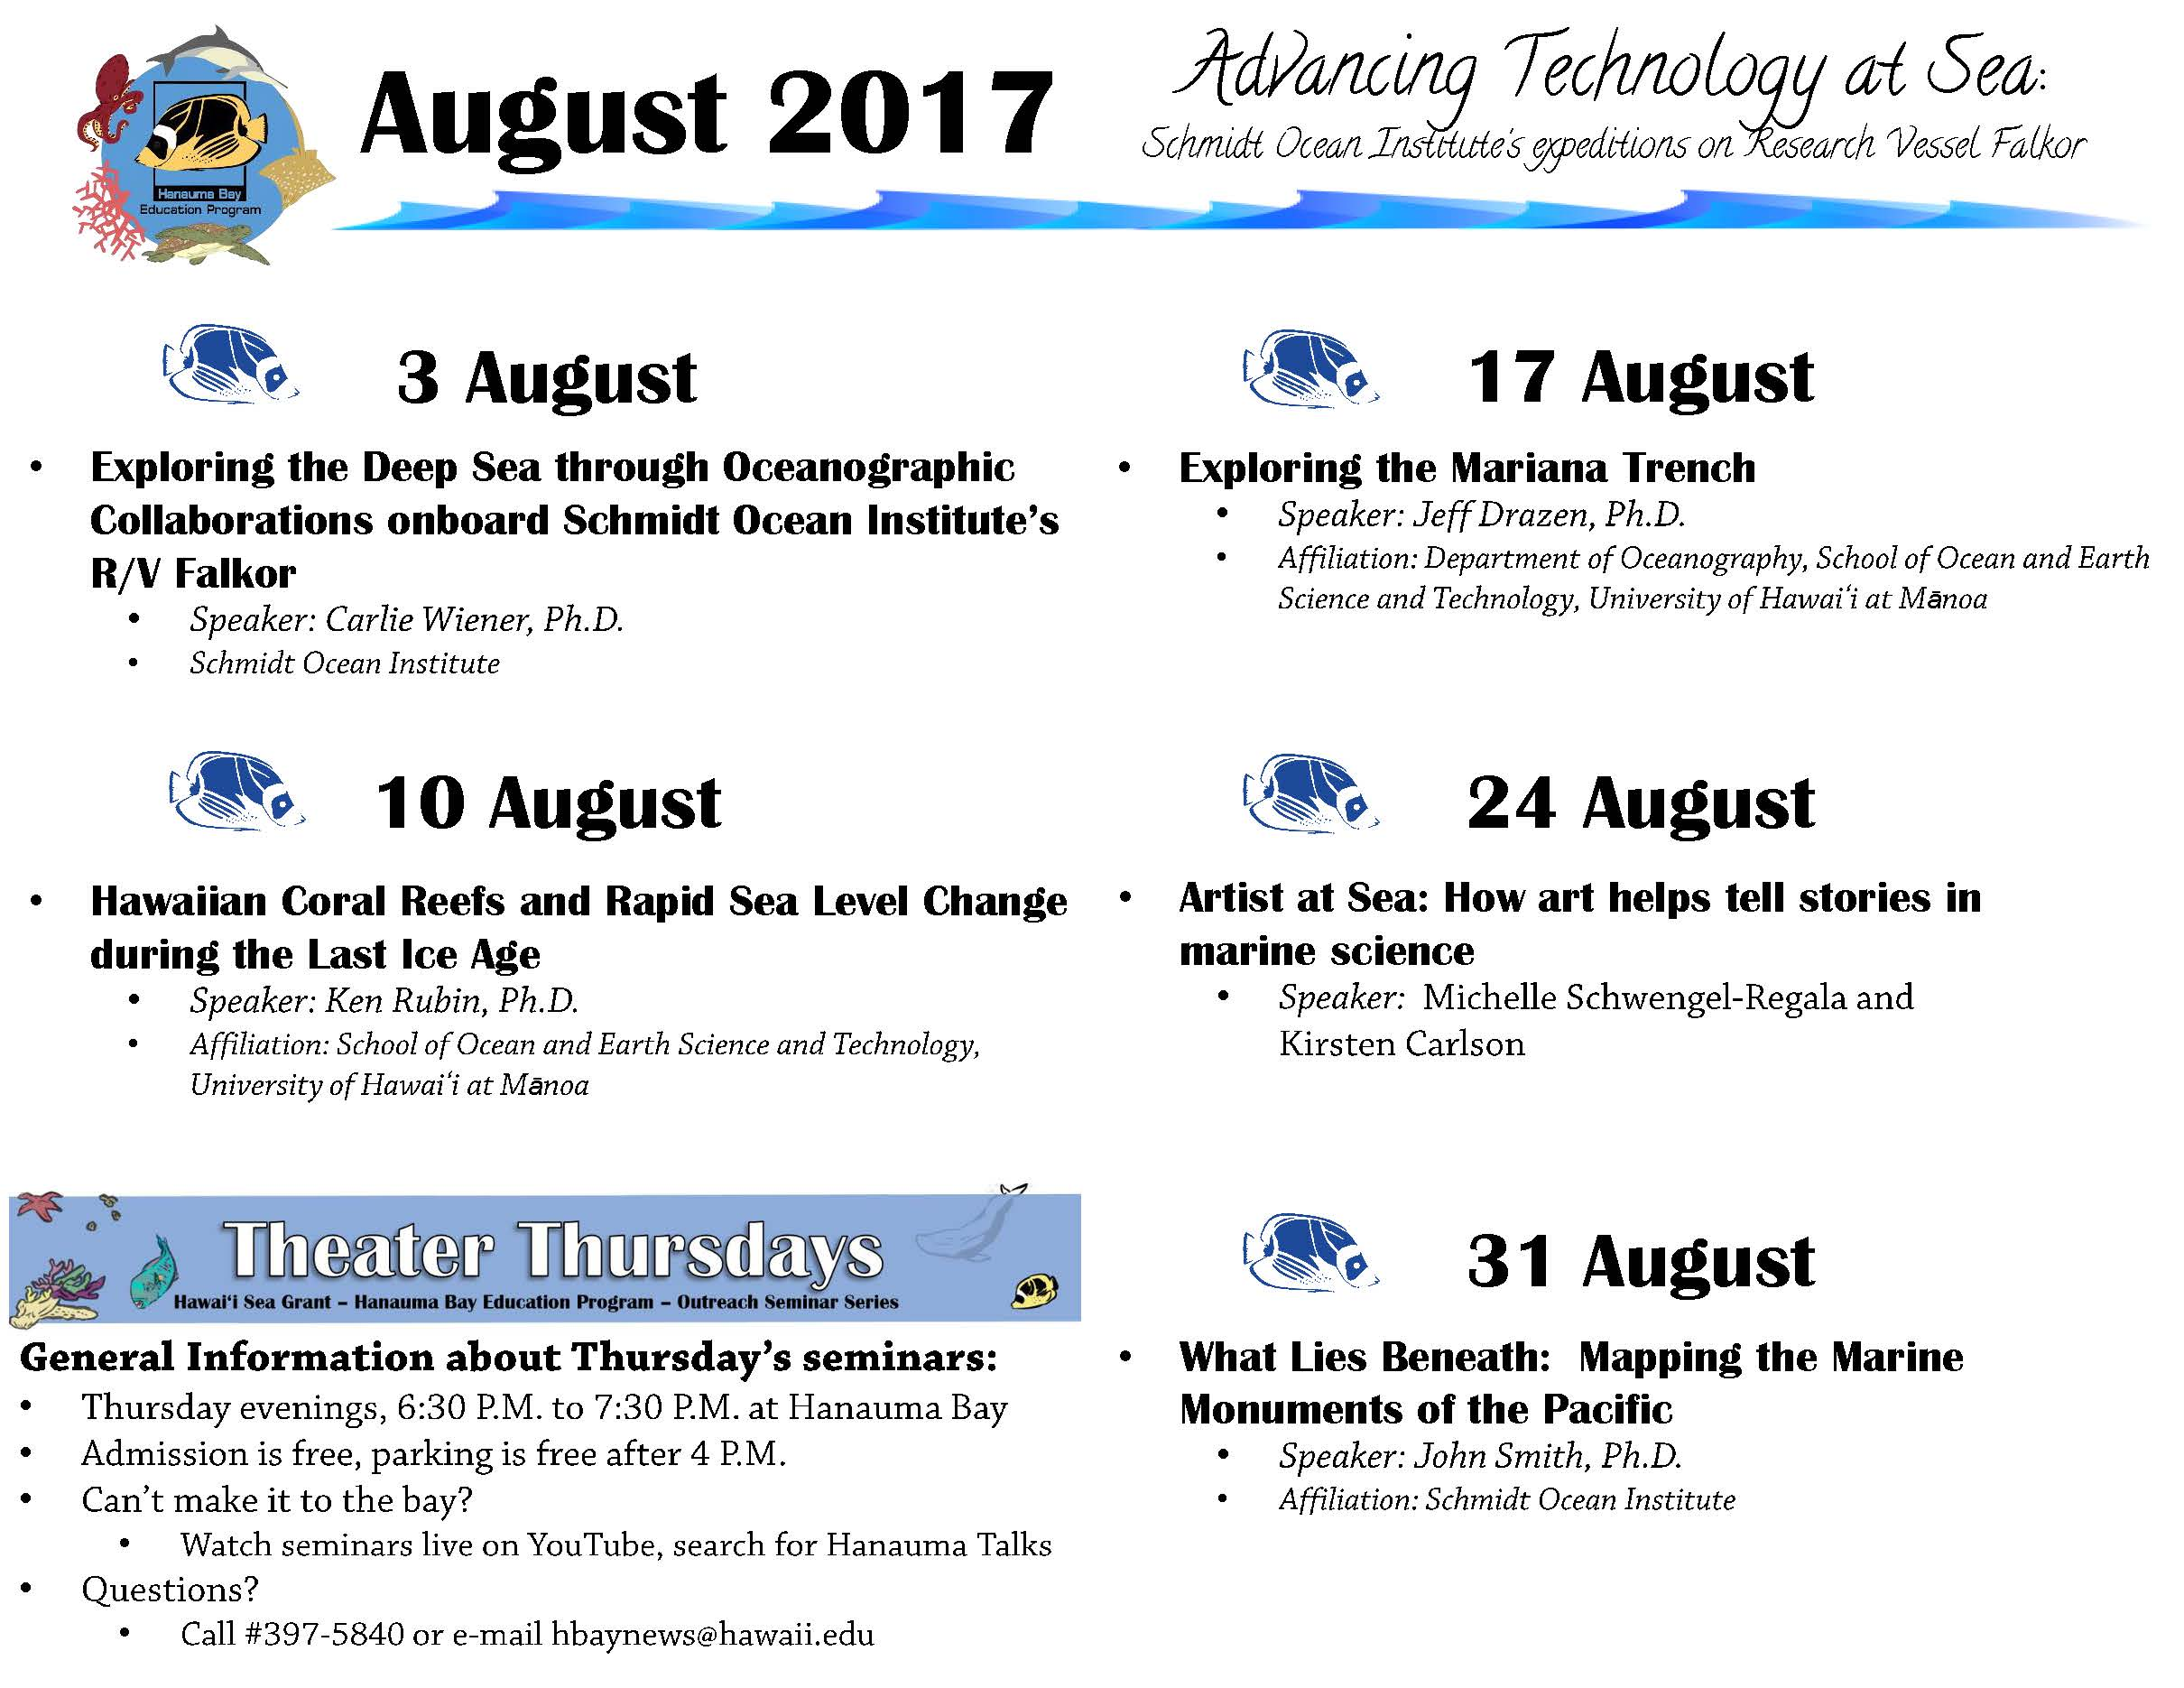 Press_flyer_Hanauma_Bay_Education_Program_August_2017_Seminars.jpg